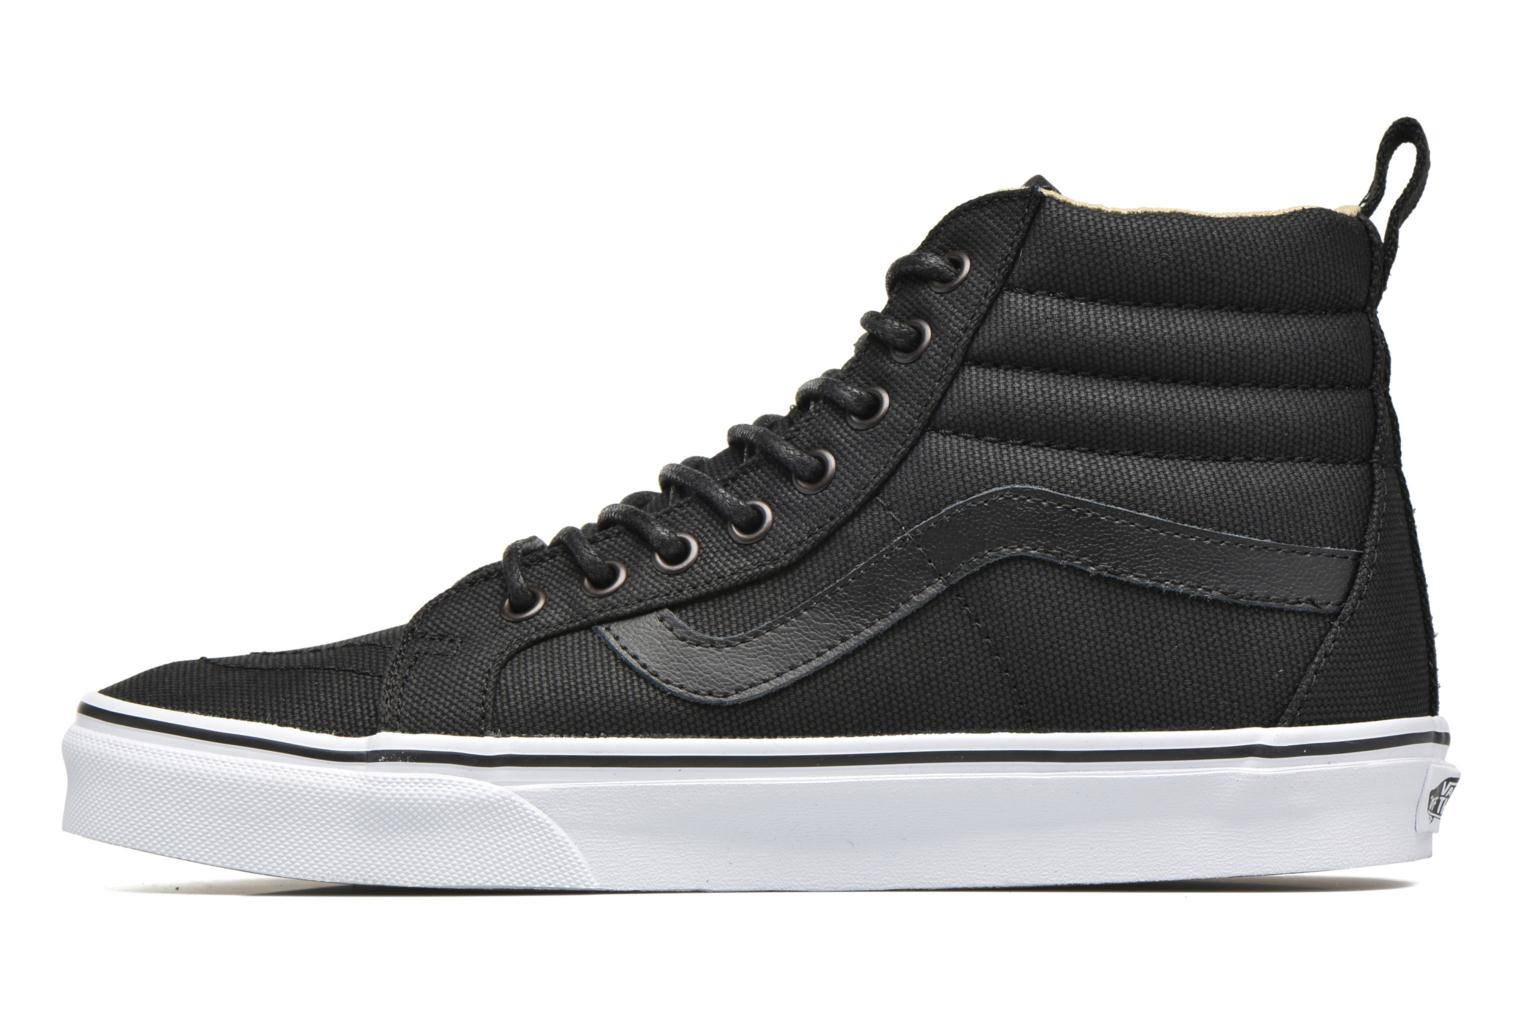 SK8-Hi Reissue PT (Military Twill) Black/True White